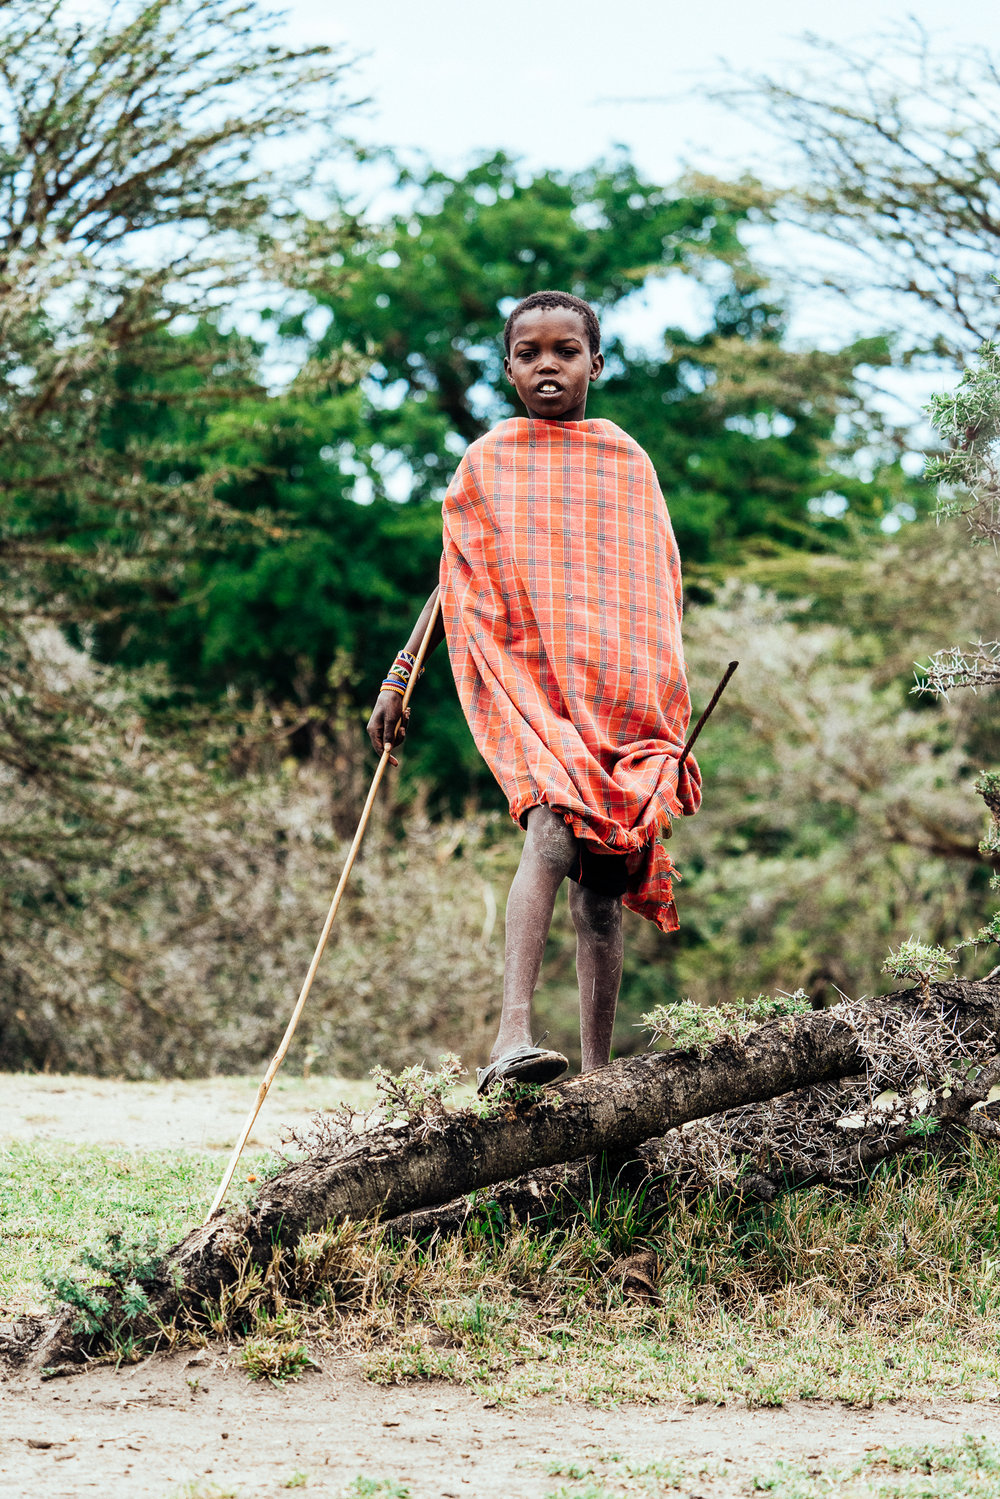 Maasai Boy out in the Mara Ph. Dave Krugman